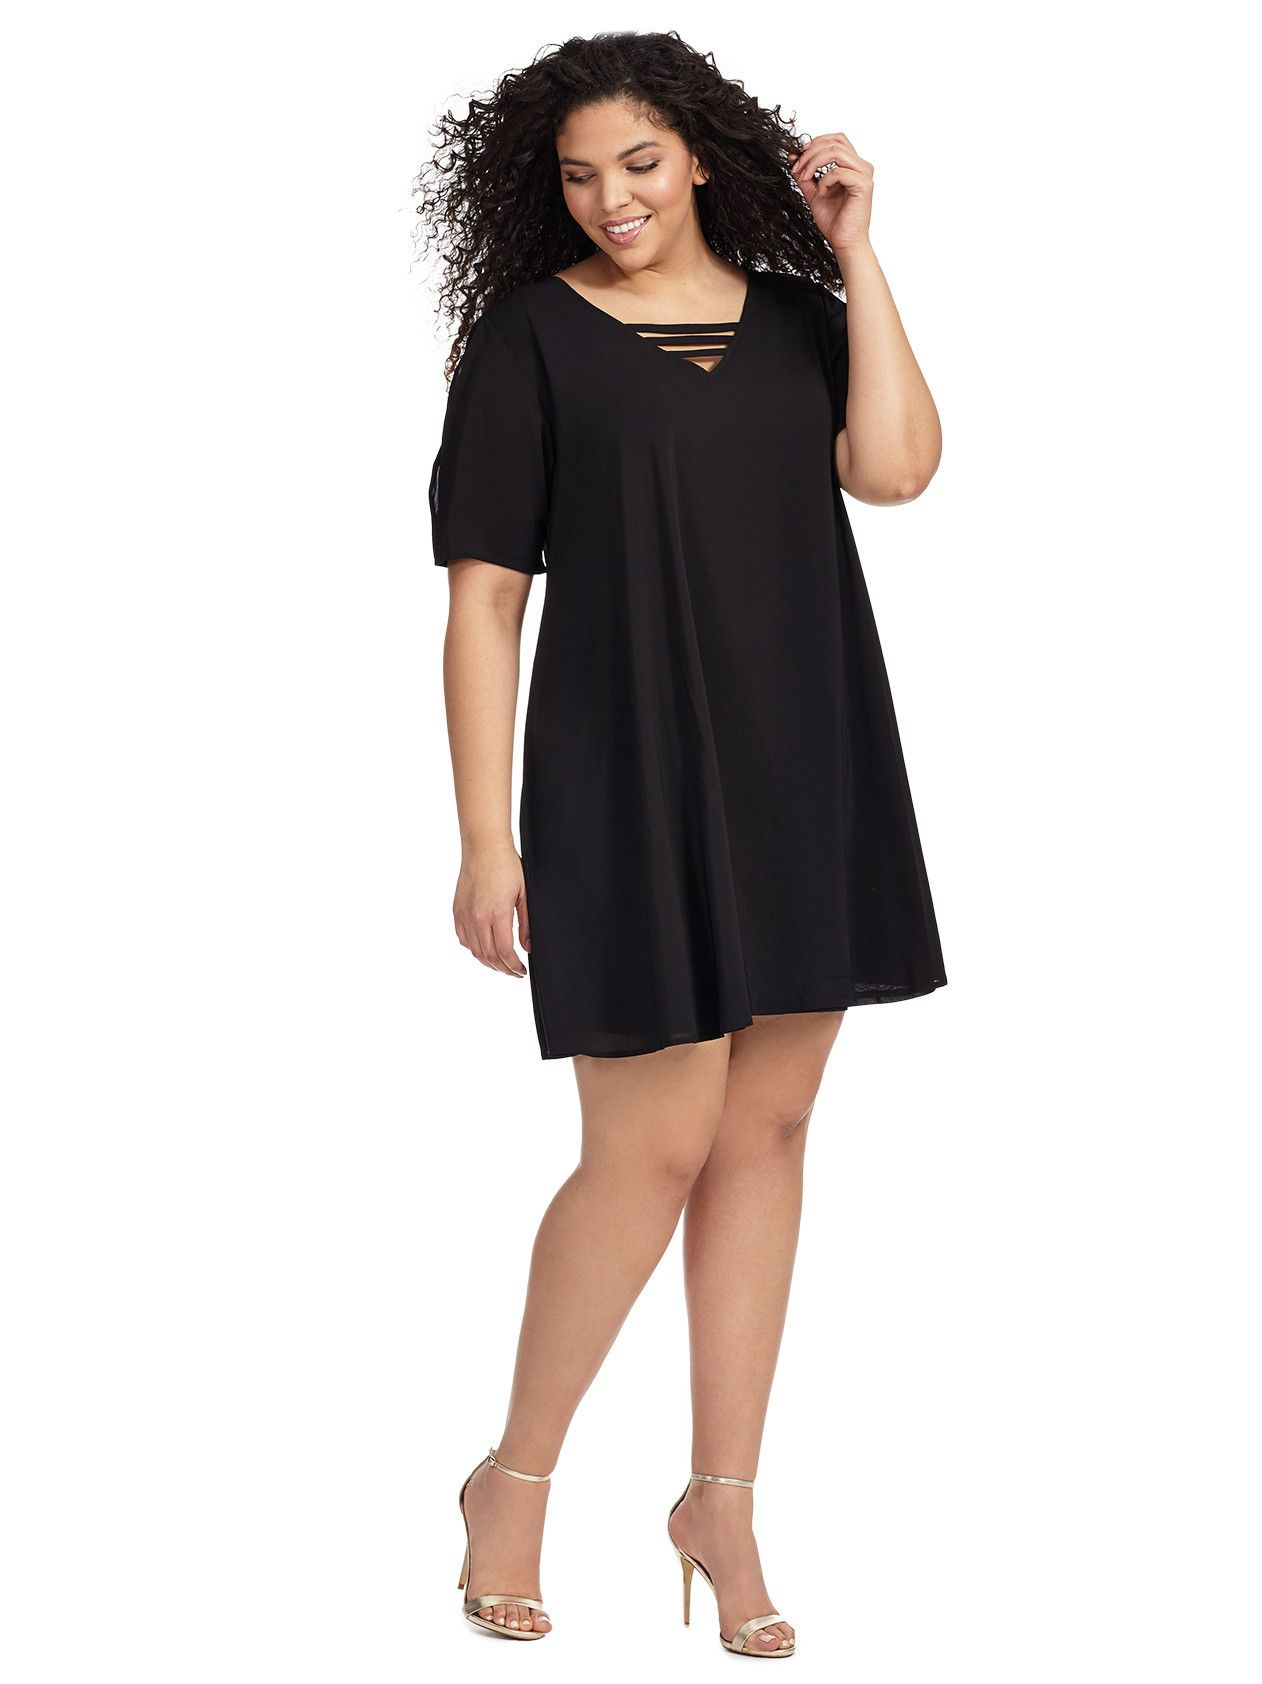 Swing dress in black new arrivals closet now pinterest